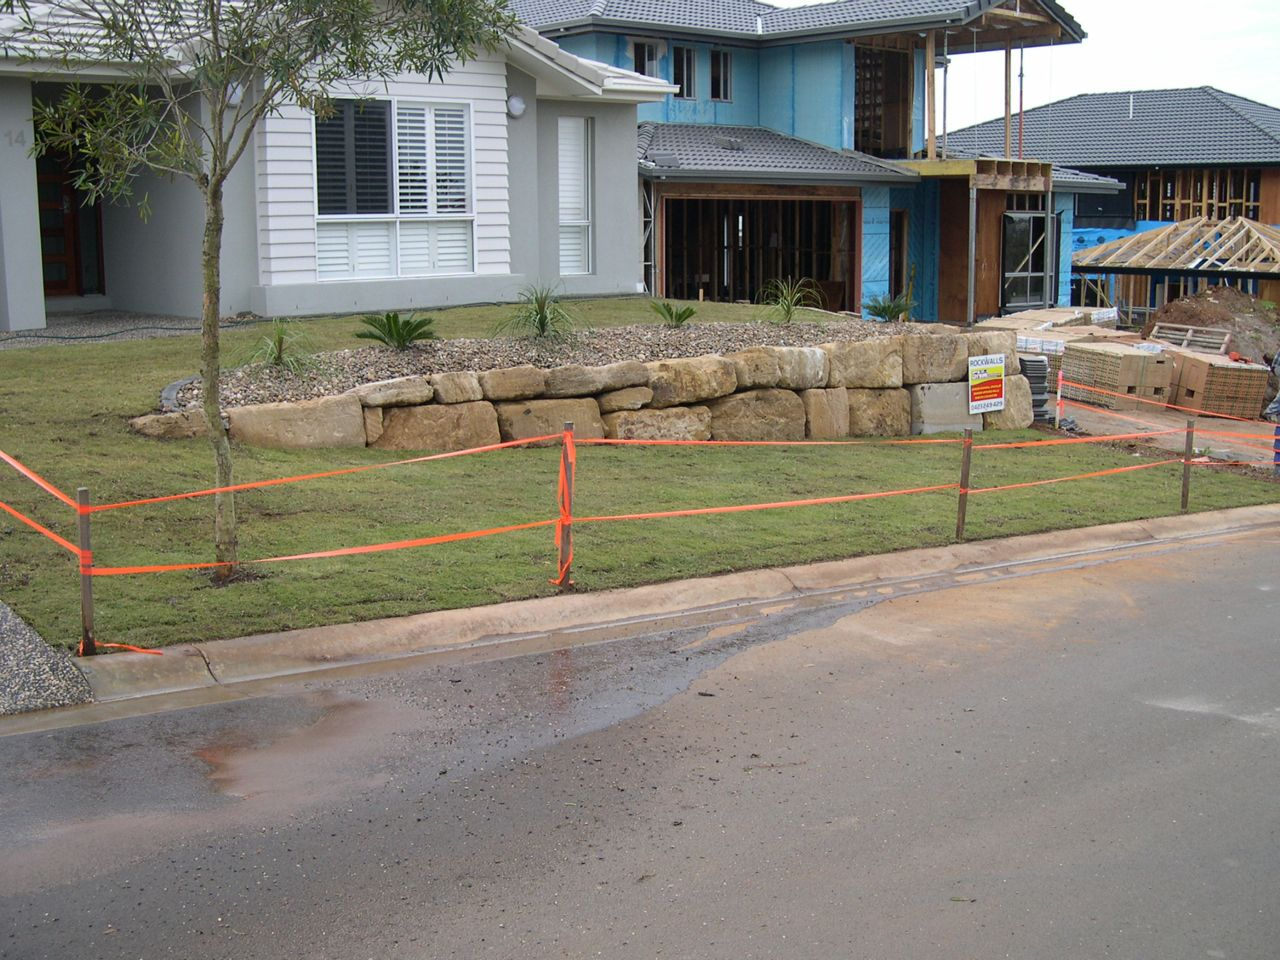 Another retaining wall Question